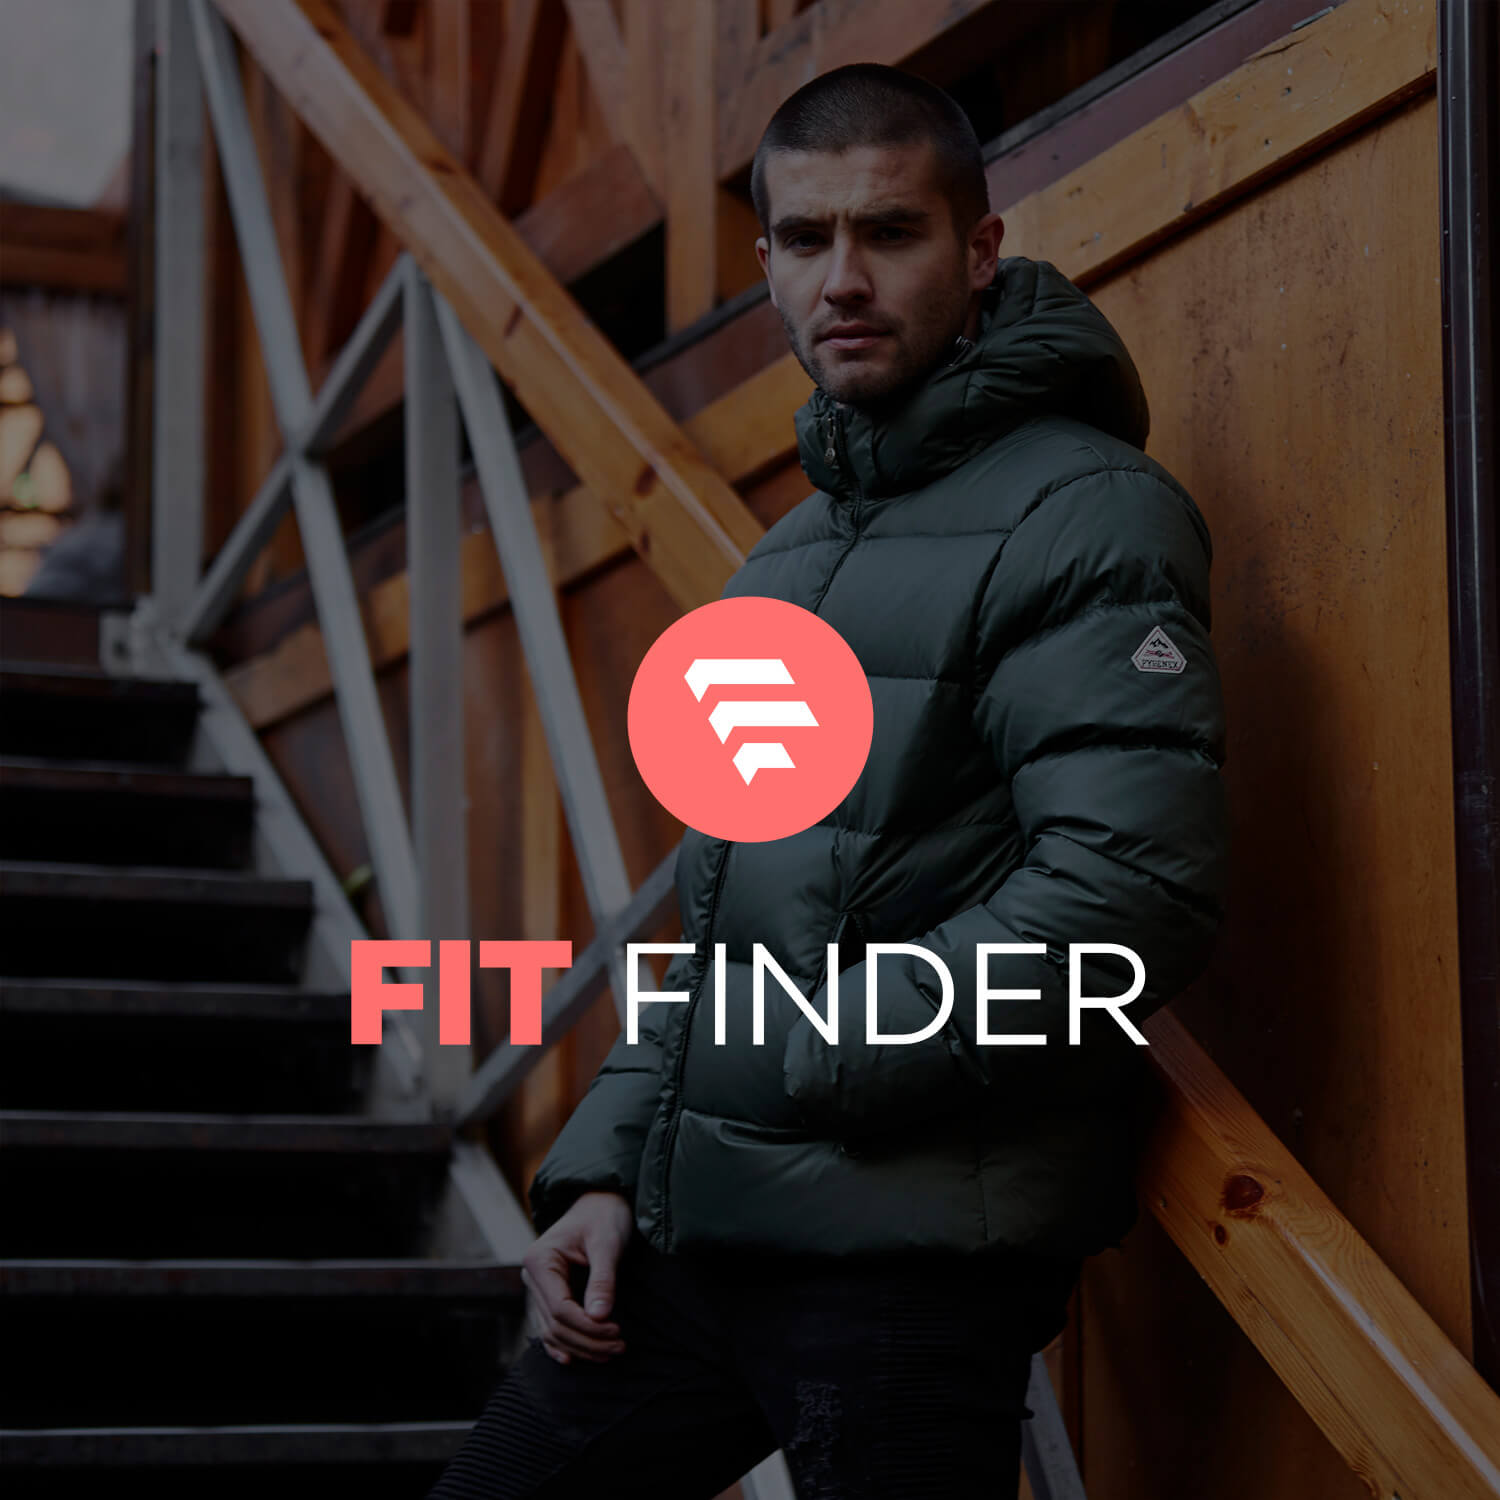 Unsure of your size? Use FitFinder